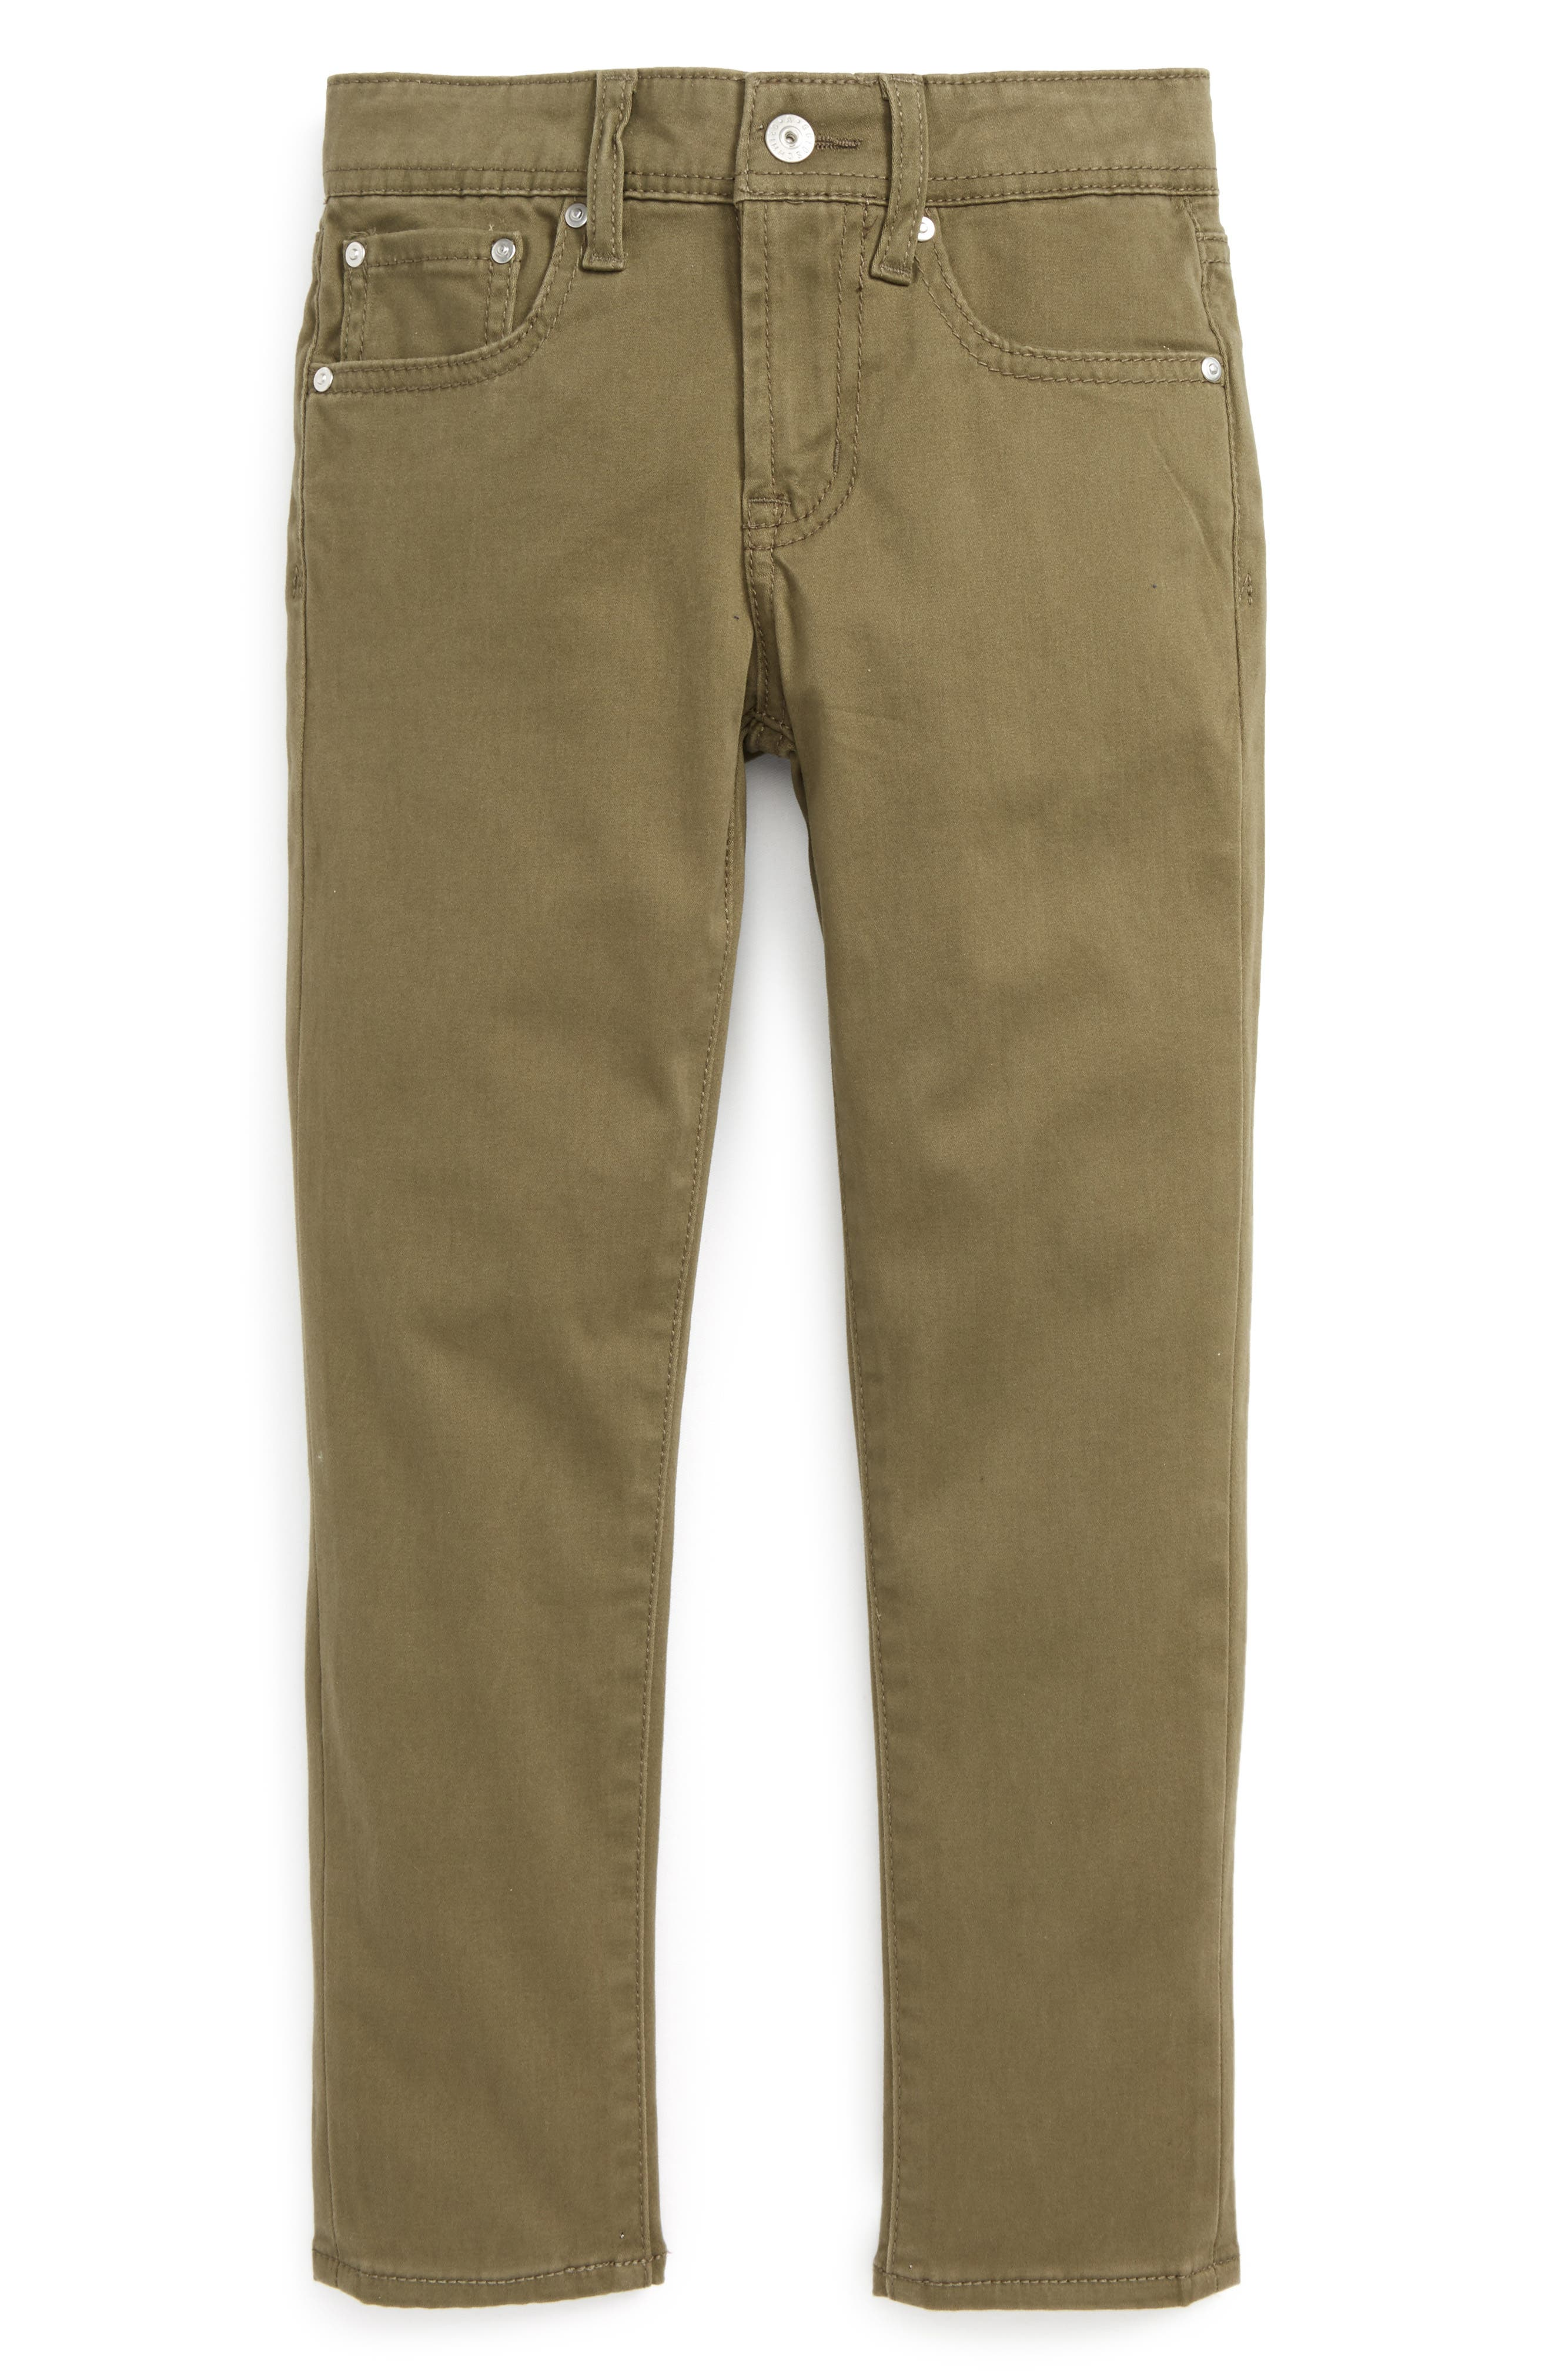 Main Image - ag adriano goldschmied kids The Stryker Luxe Slim Straight Leg Jeans (Toddler Boys, Little Boys & Big Boys)